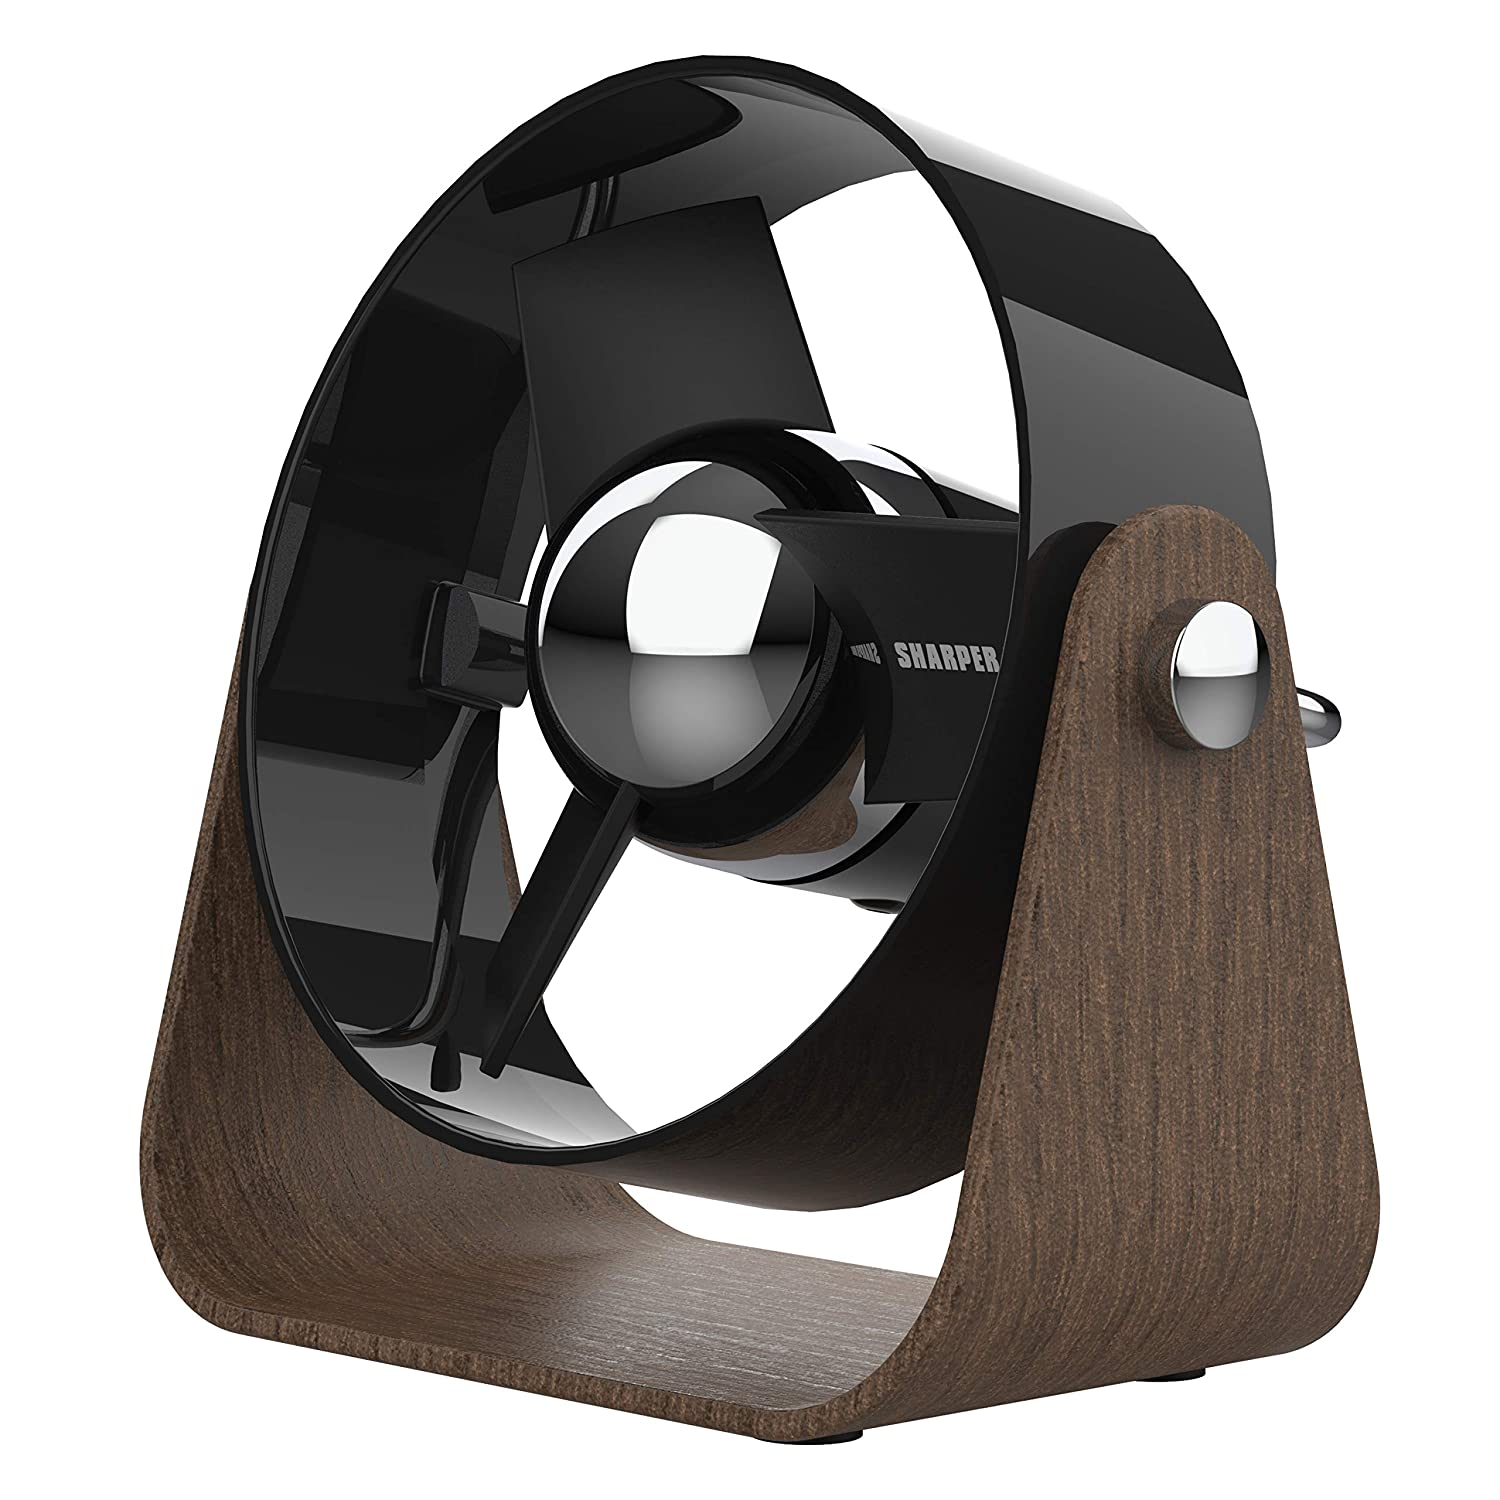 Sharper Image SBS1-SI Fan with Soft Blades, 2 Speeds, Touch Control, Quiet Operation, 5V Wall Adapter, 6 ft. USB Cable, Black/Walnut